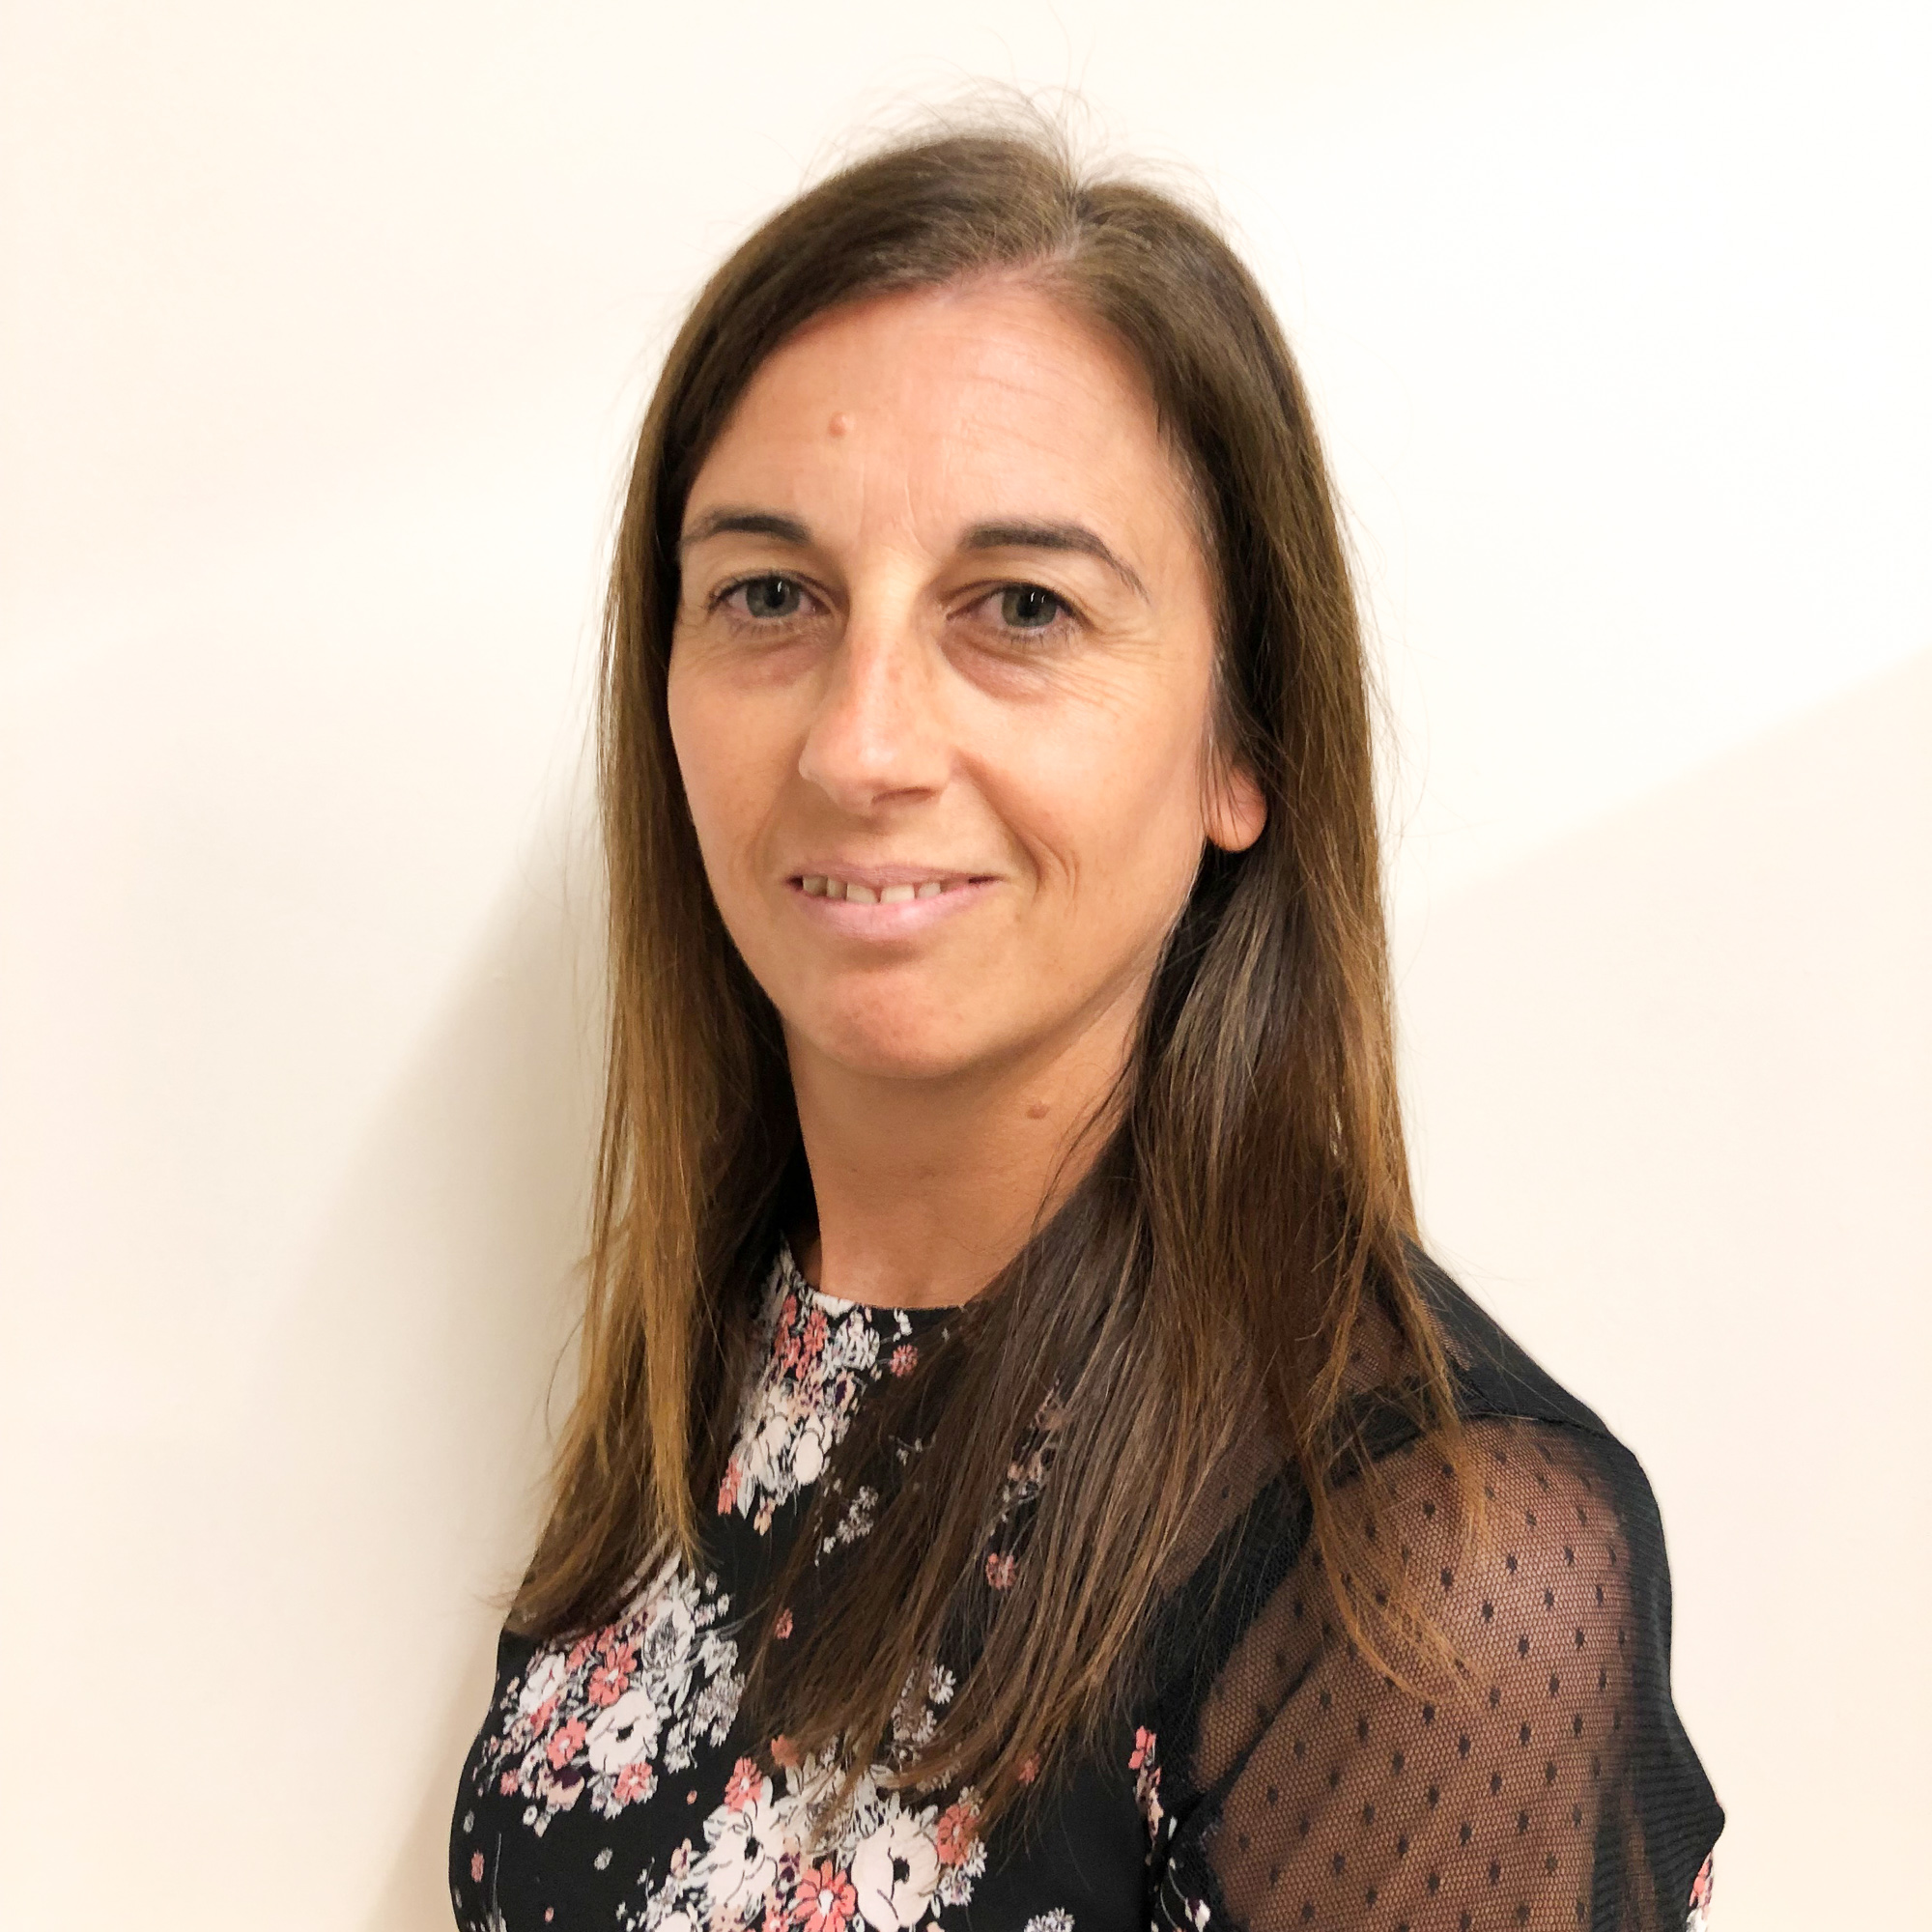 Kerry Taylor - Client Services Manager